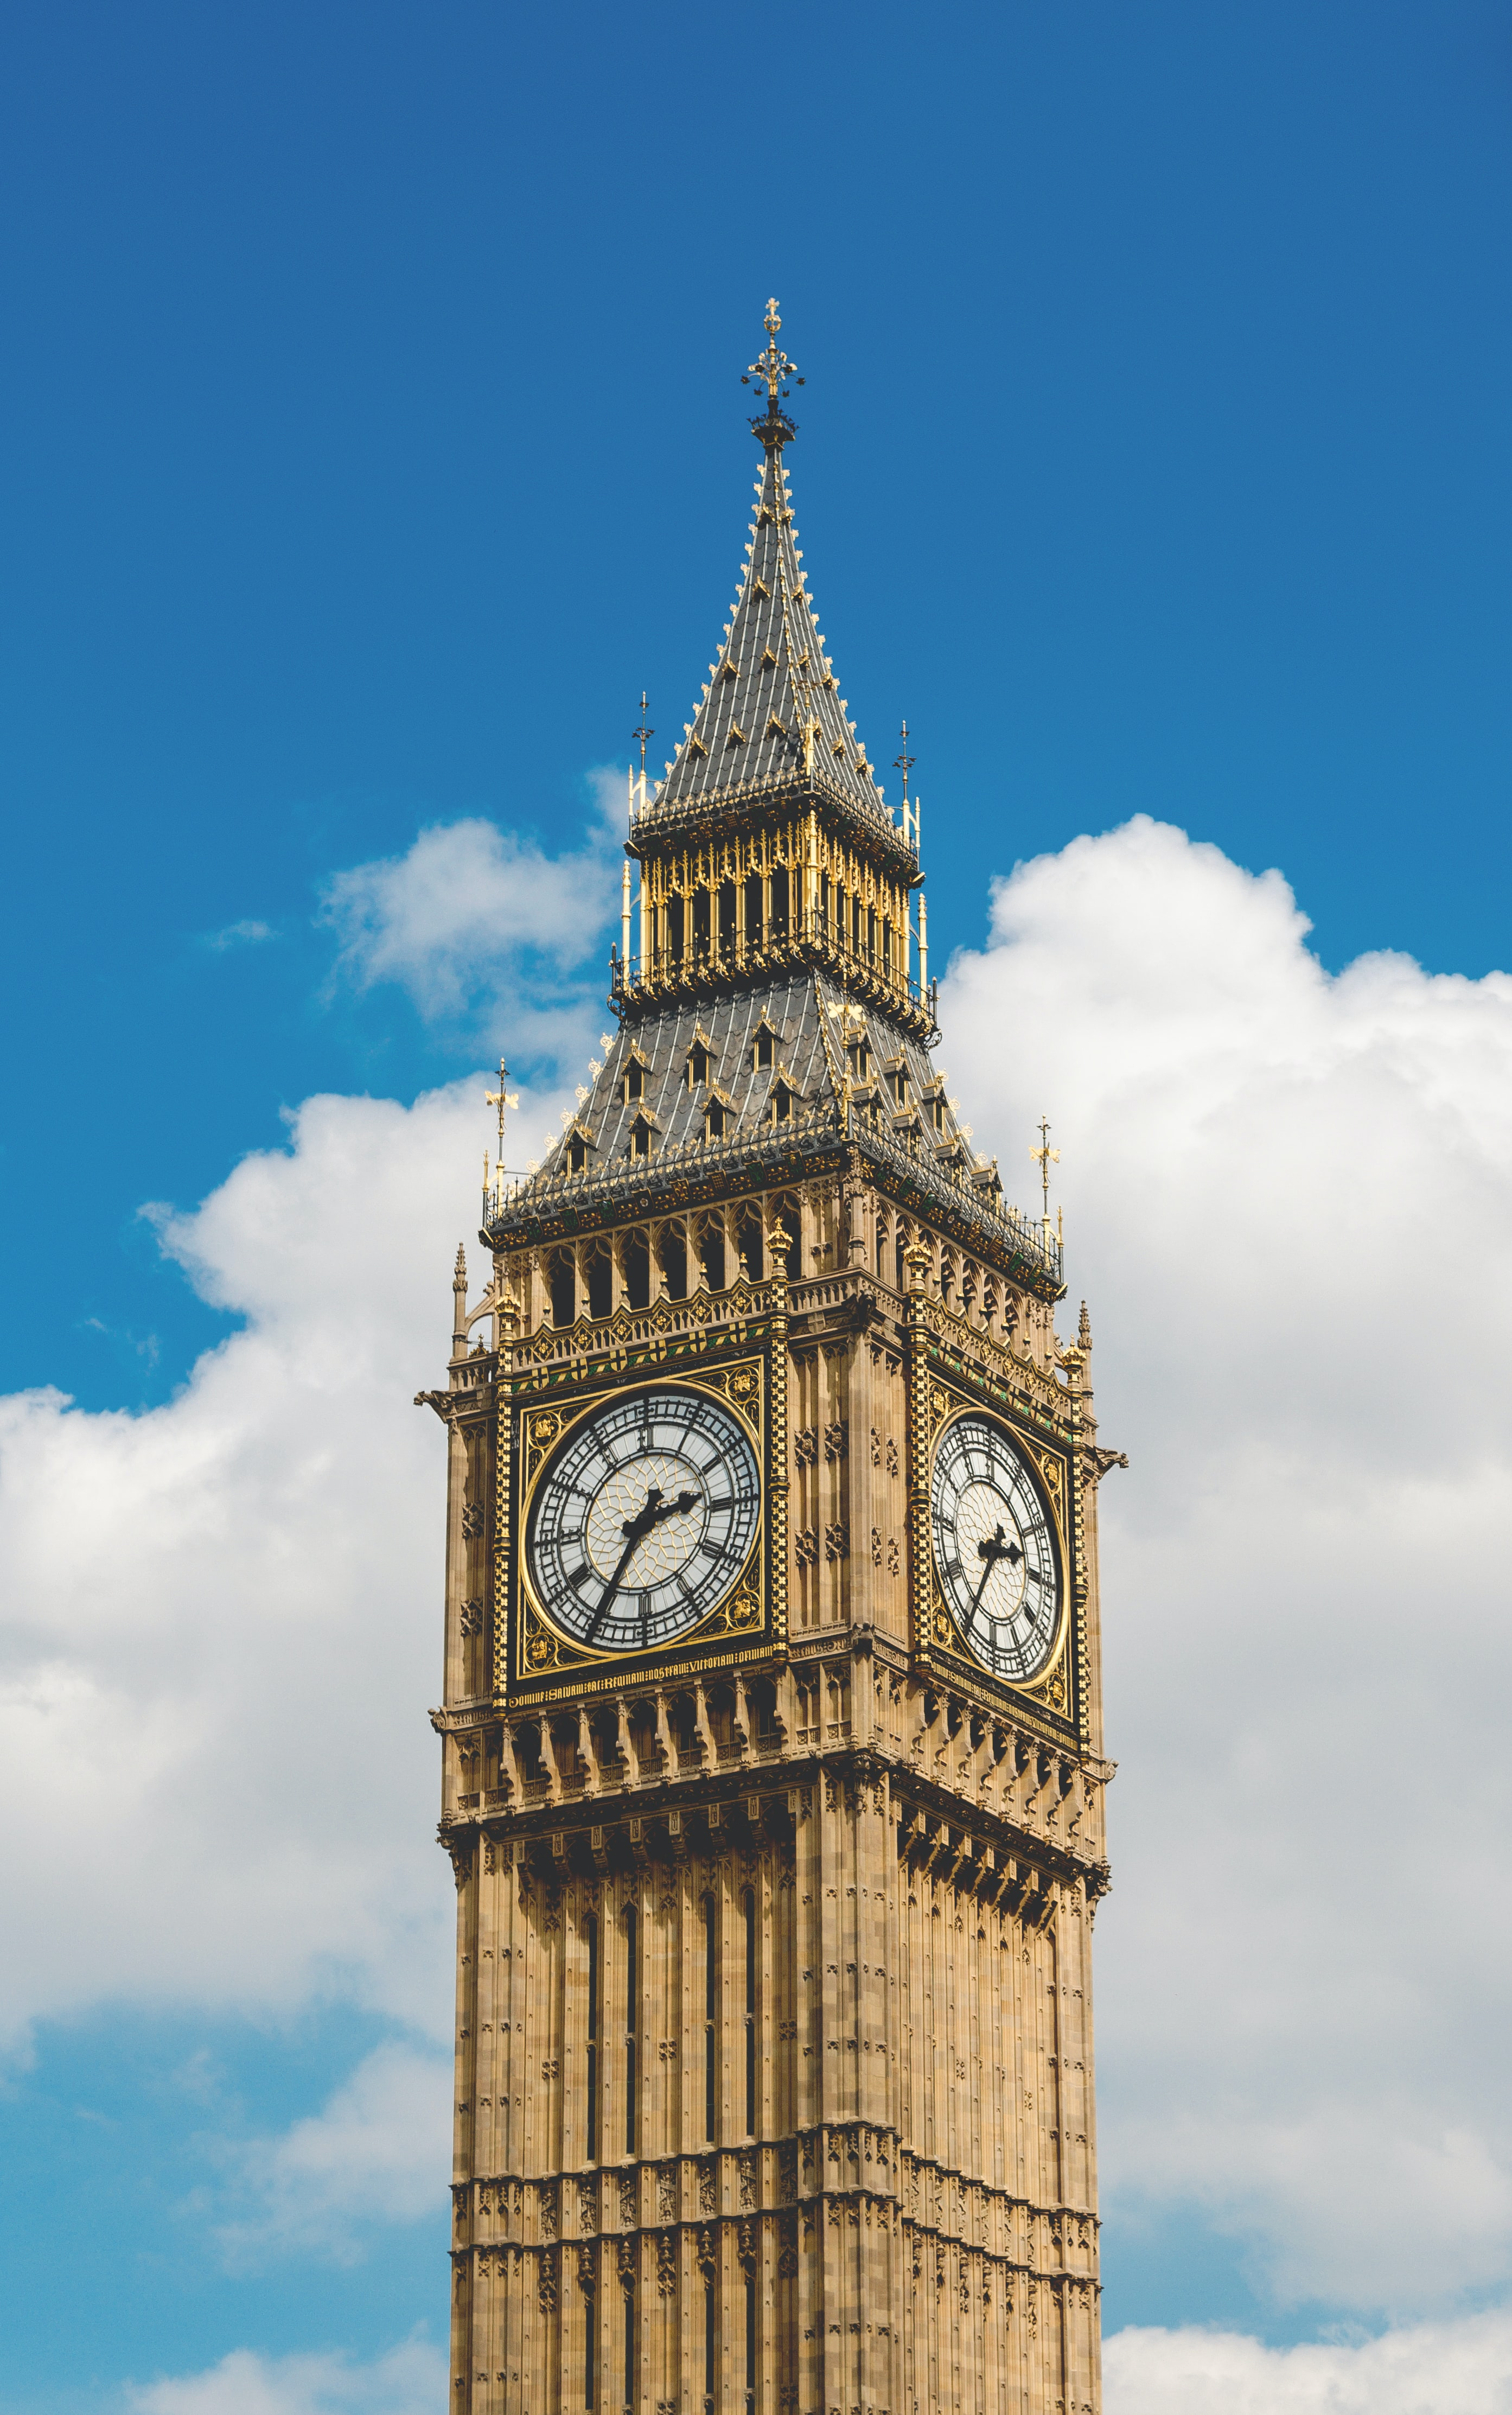 The Elizabeth Tower housing the Big Ben bell against a fluffy cloud in a blue sky